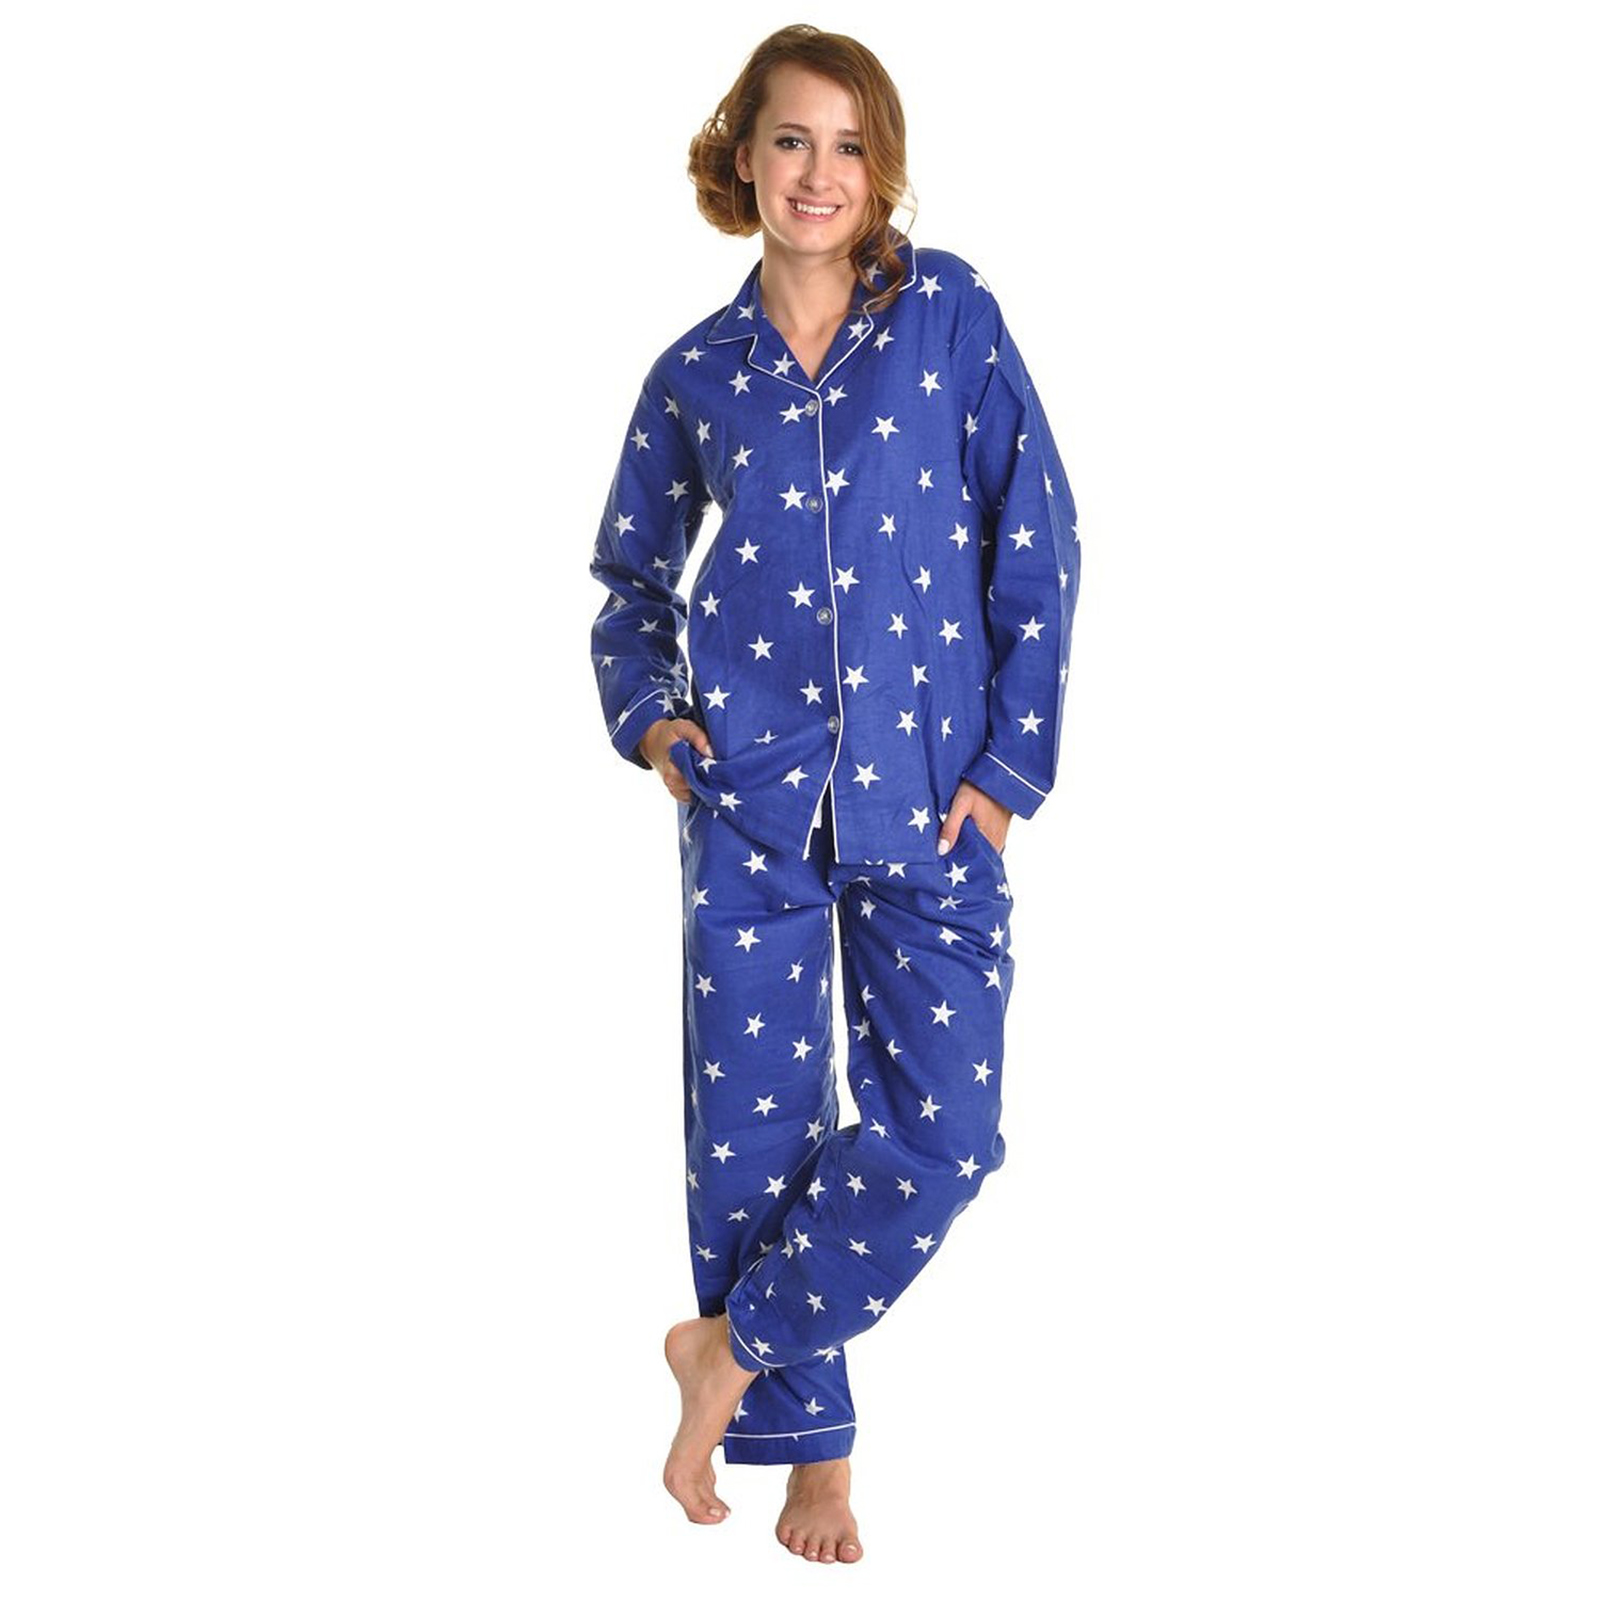 Womens Flannel Pajamas Sets - World's Softest Pajamas for Women. from $ 69 99 Prime. out of 5 stars Leisureland. Women's Cotton Flannel Long Sleeve Pajama Set, PJs Sleepwear. from $ 22 86 Prime. out of 5 stars SleepytimePjs. Holiday Family Matching Red Trees Flannel PJs Sets .